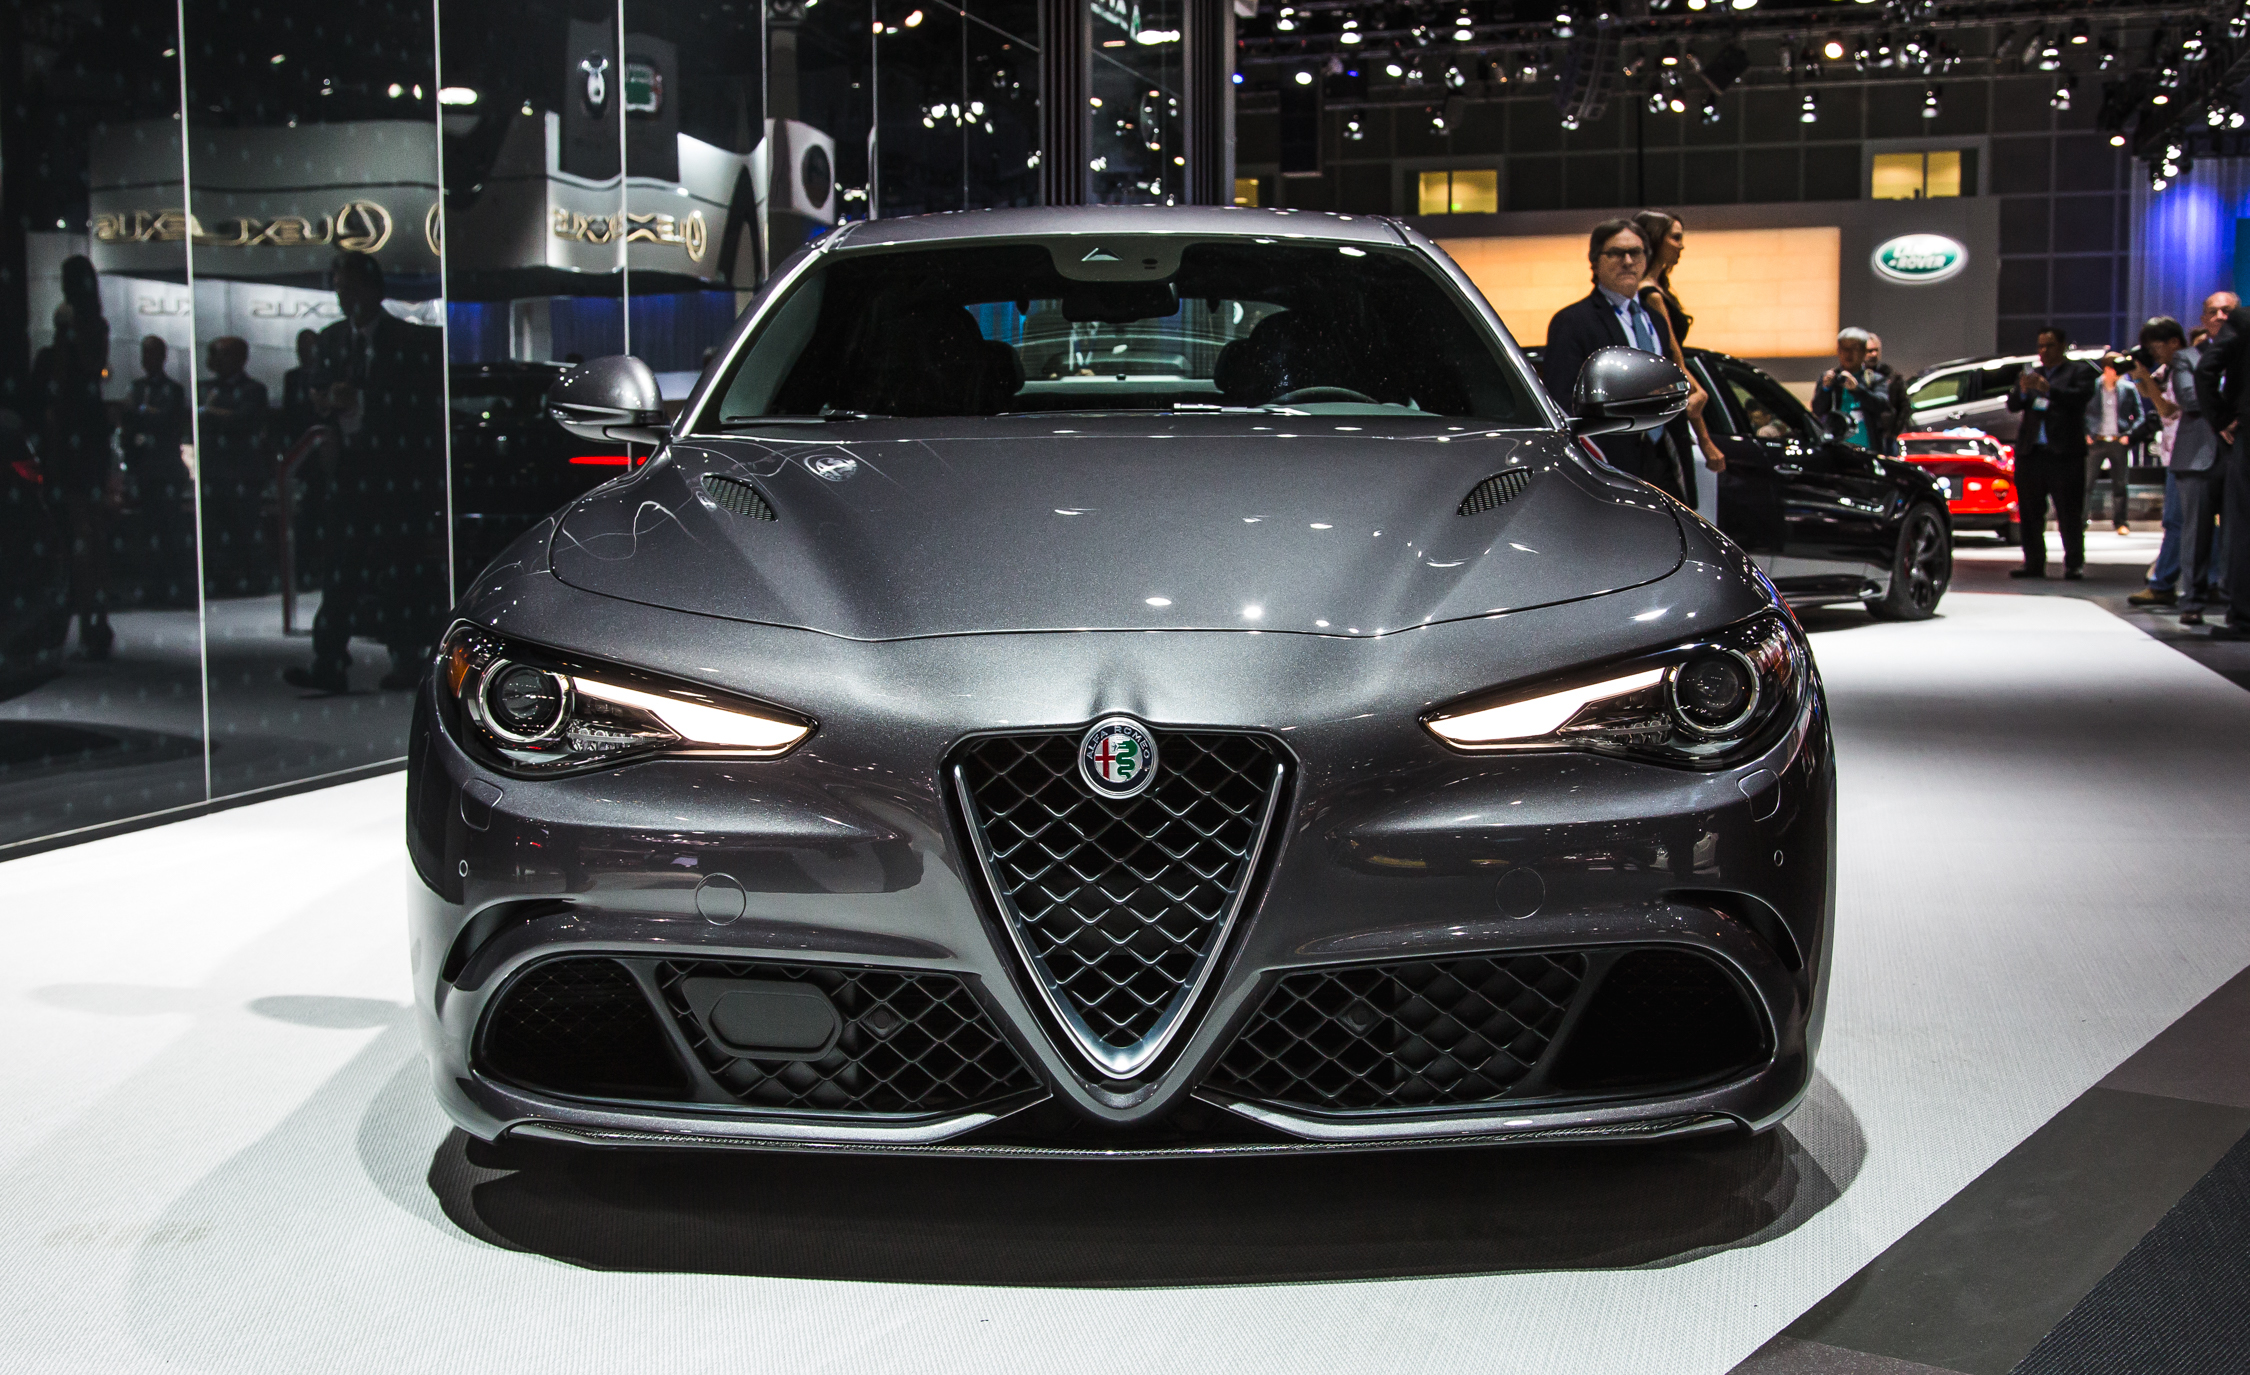 2017 Alfa Romeo Giulia Quadrifoglio Front End Exterior (Photo 20 of 29)